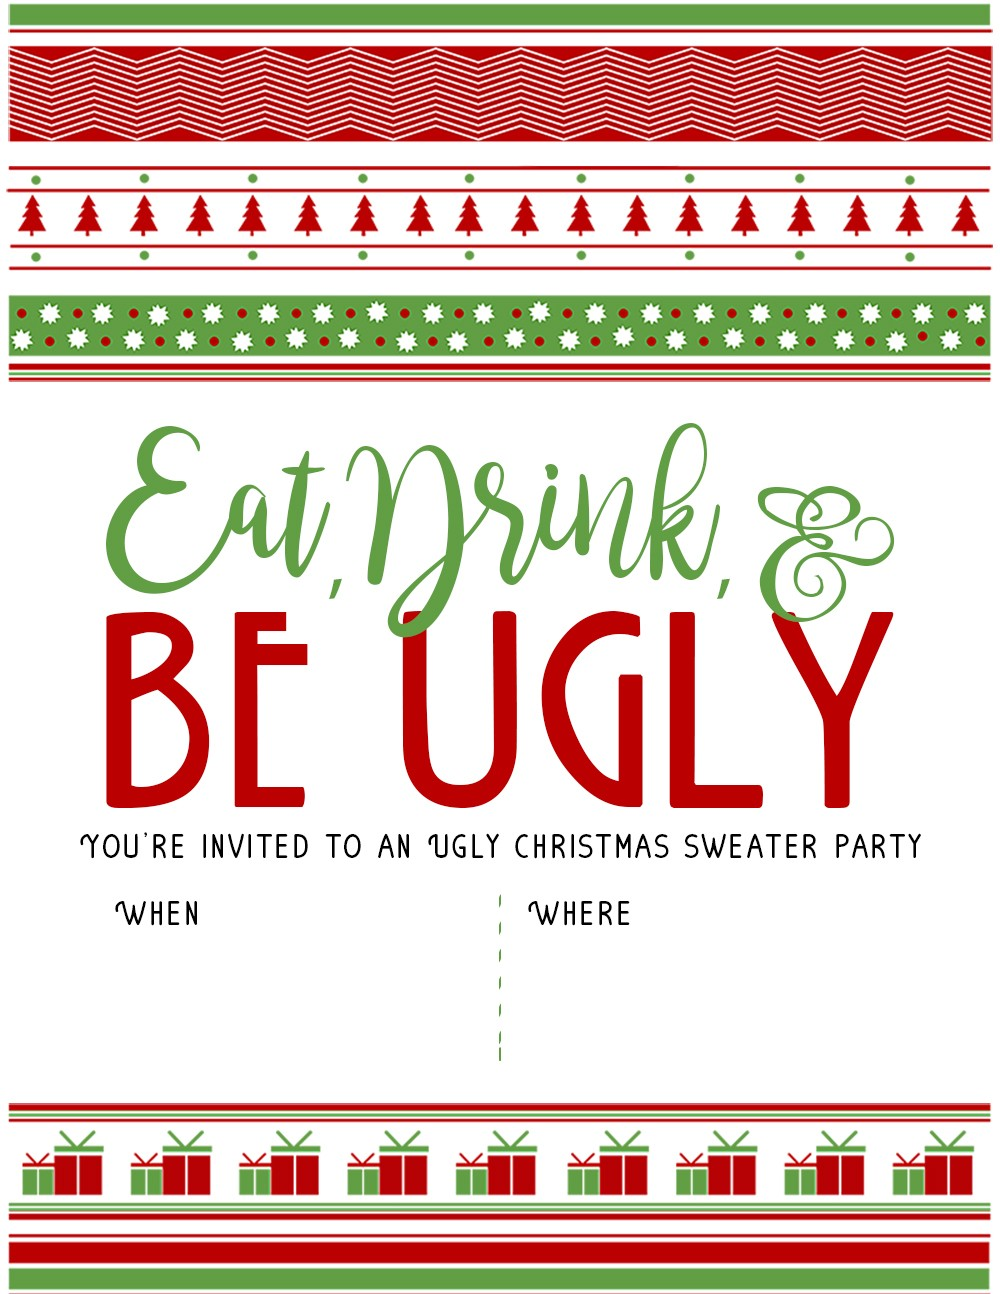 Ugly Christmas Sweater Party Invite.Ugly Christmas Sweater Party Invitation 1 The Diy Lighthouse